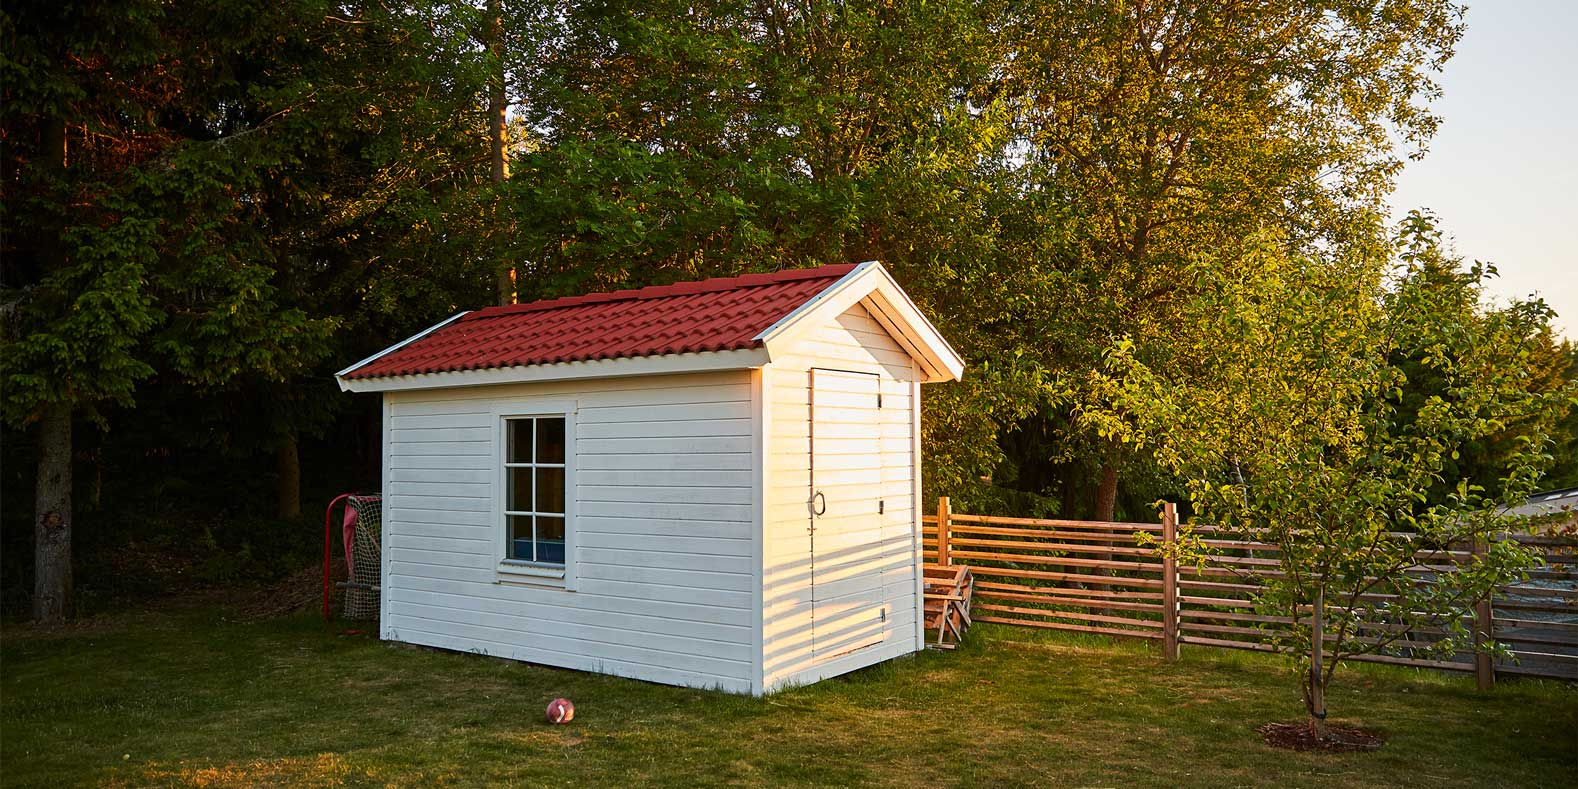 Secure Your Shed: Five Tips to Prevent Theft